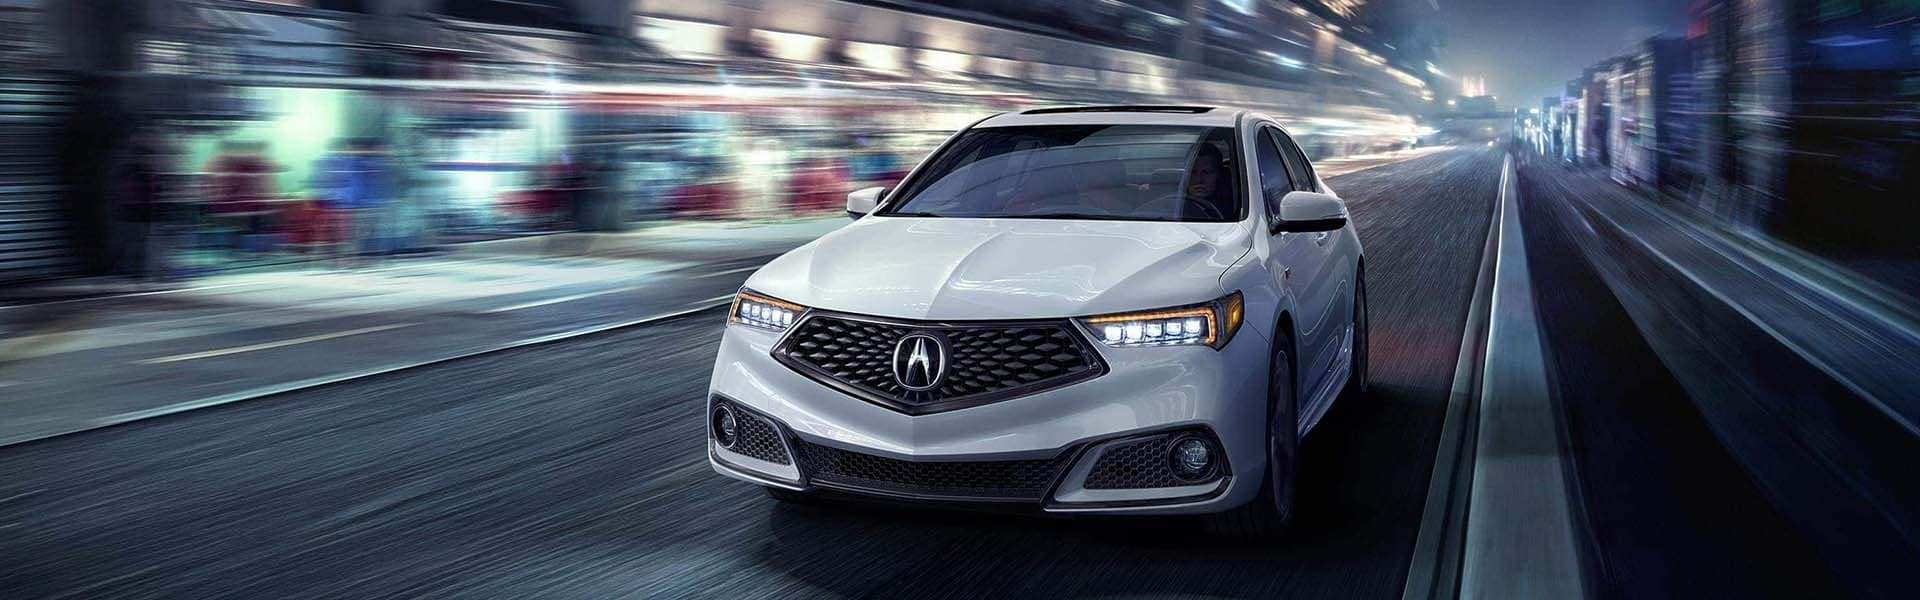 91 The Acura Tlx 2020 Vs 2019 First Drive